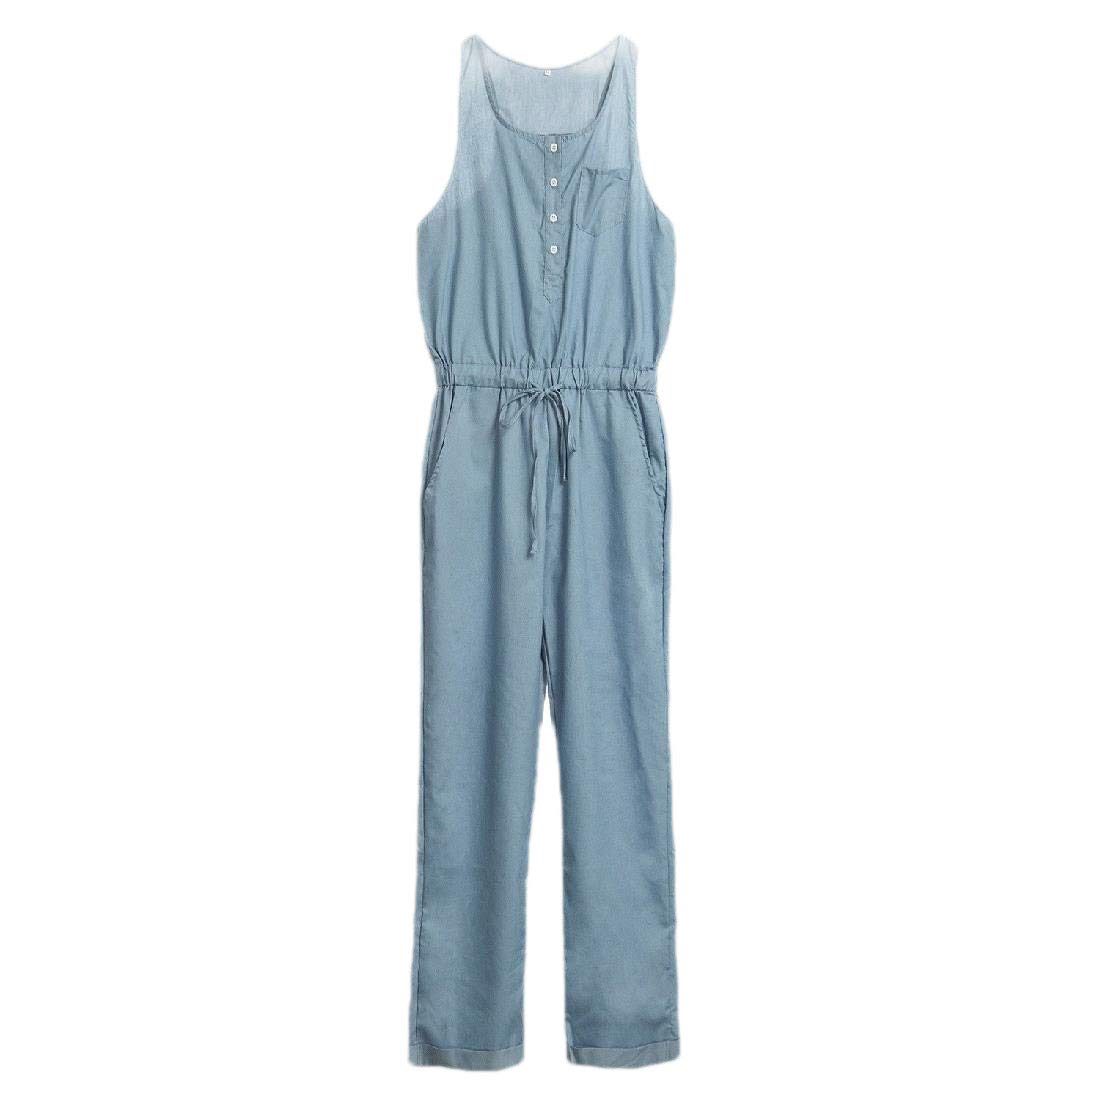 LinkShow Womens Stylish Sleeveless Outfits Denim Drawstring Jumpsuits Rompers